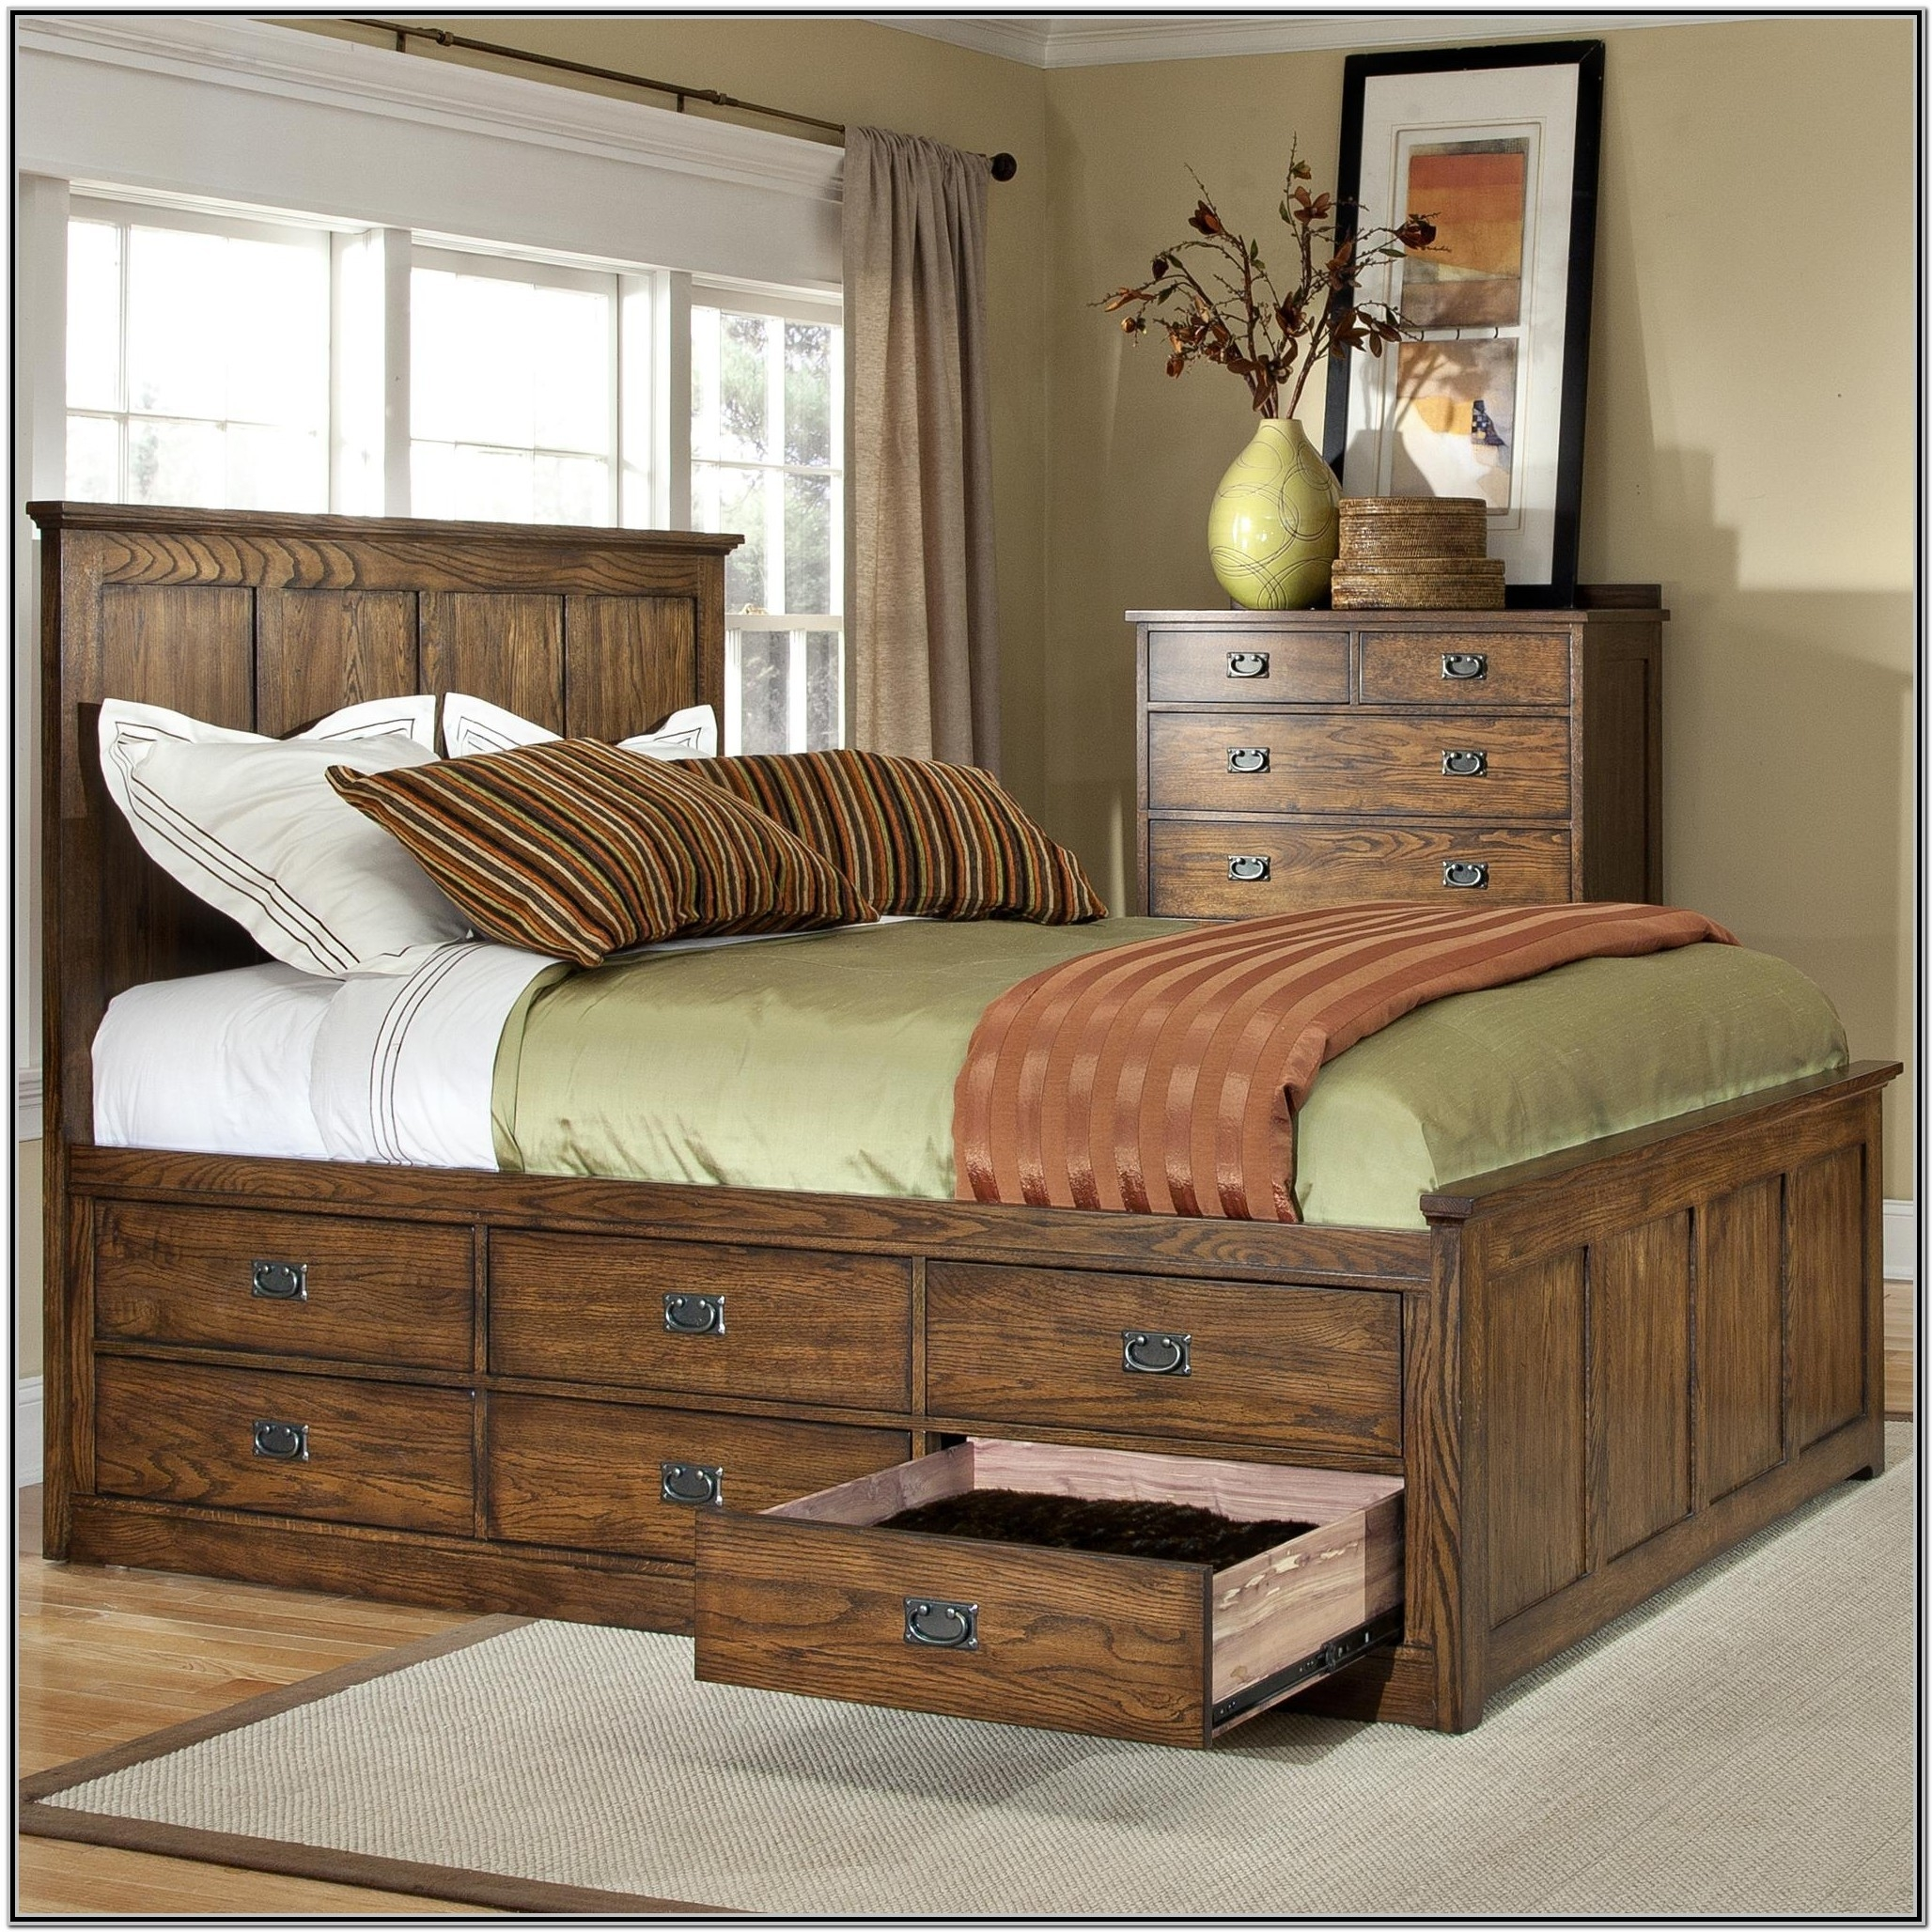 Captains Bed With Storage Drawers Ideas On Foter